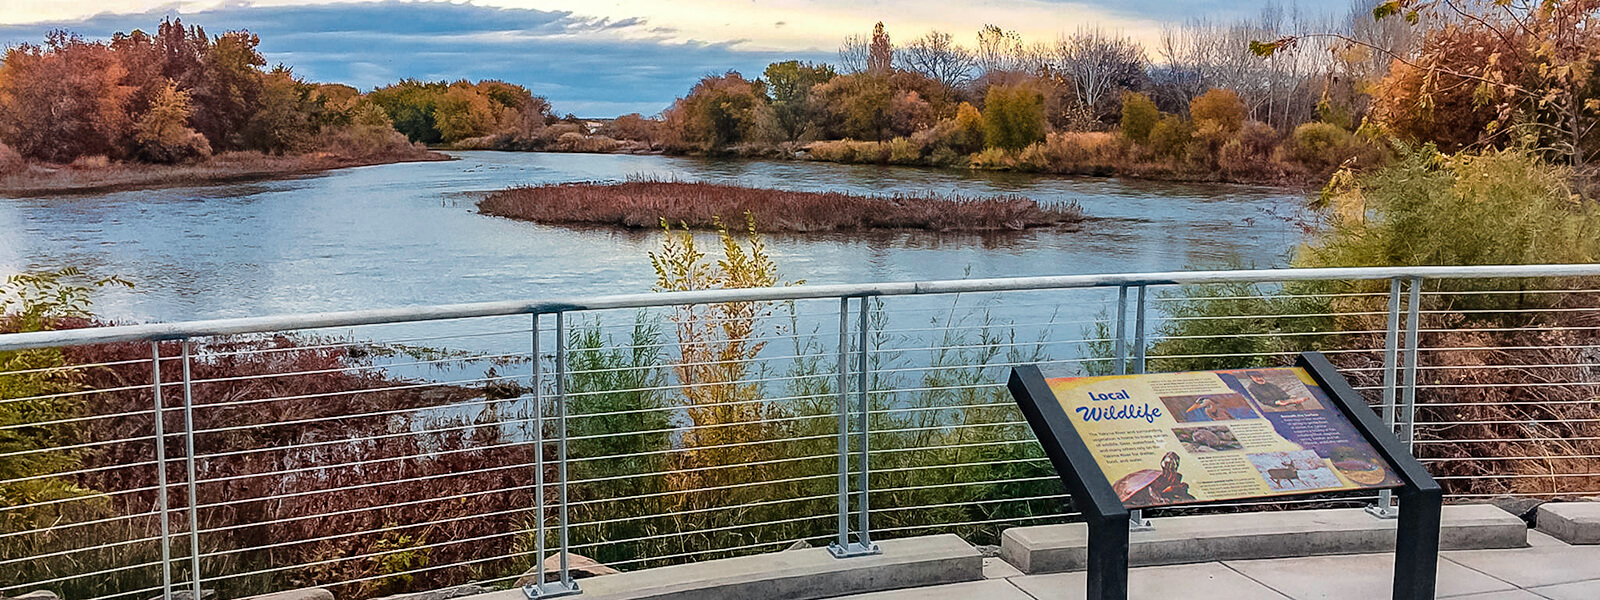 Yakima River Gateway overlook structure and interpretive sign.